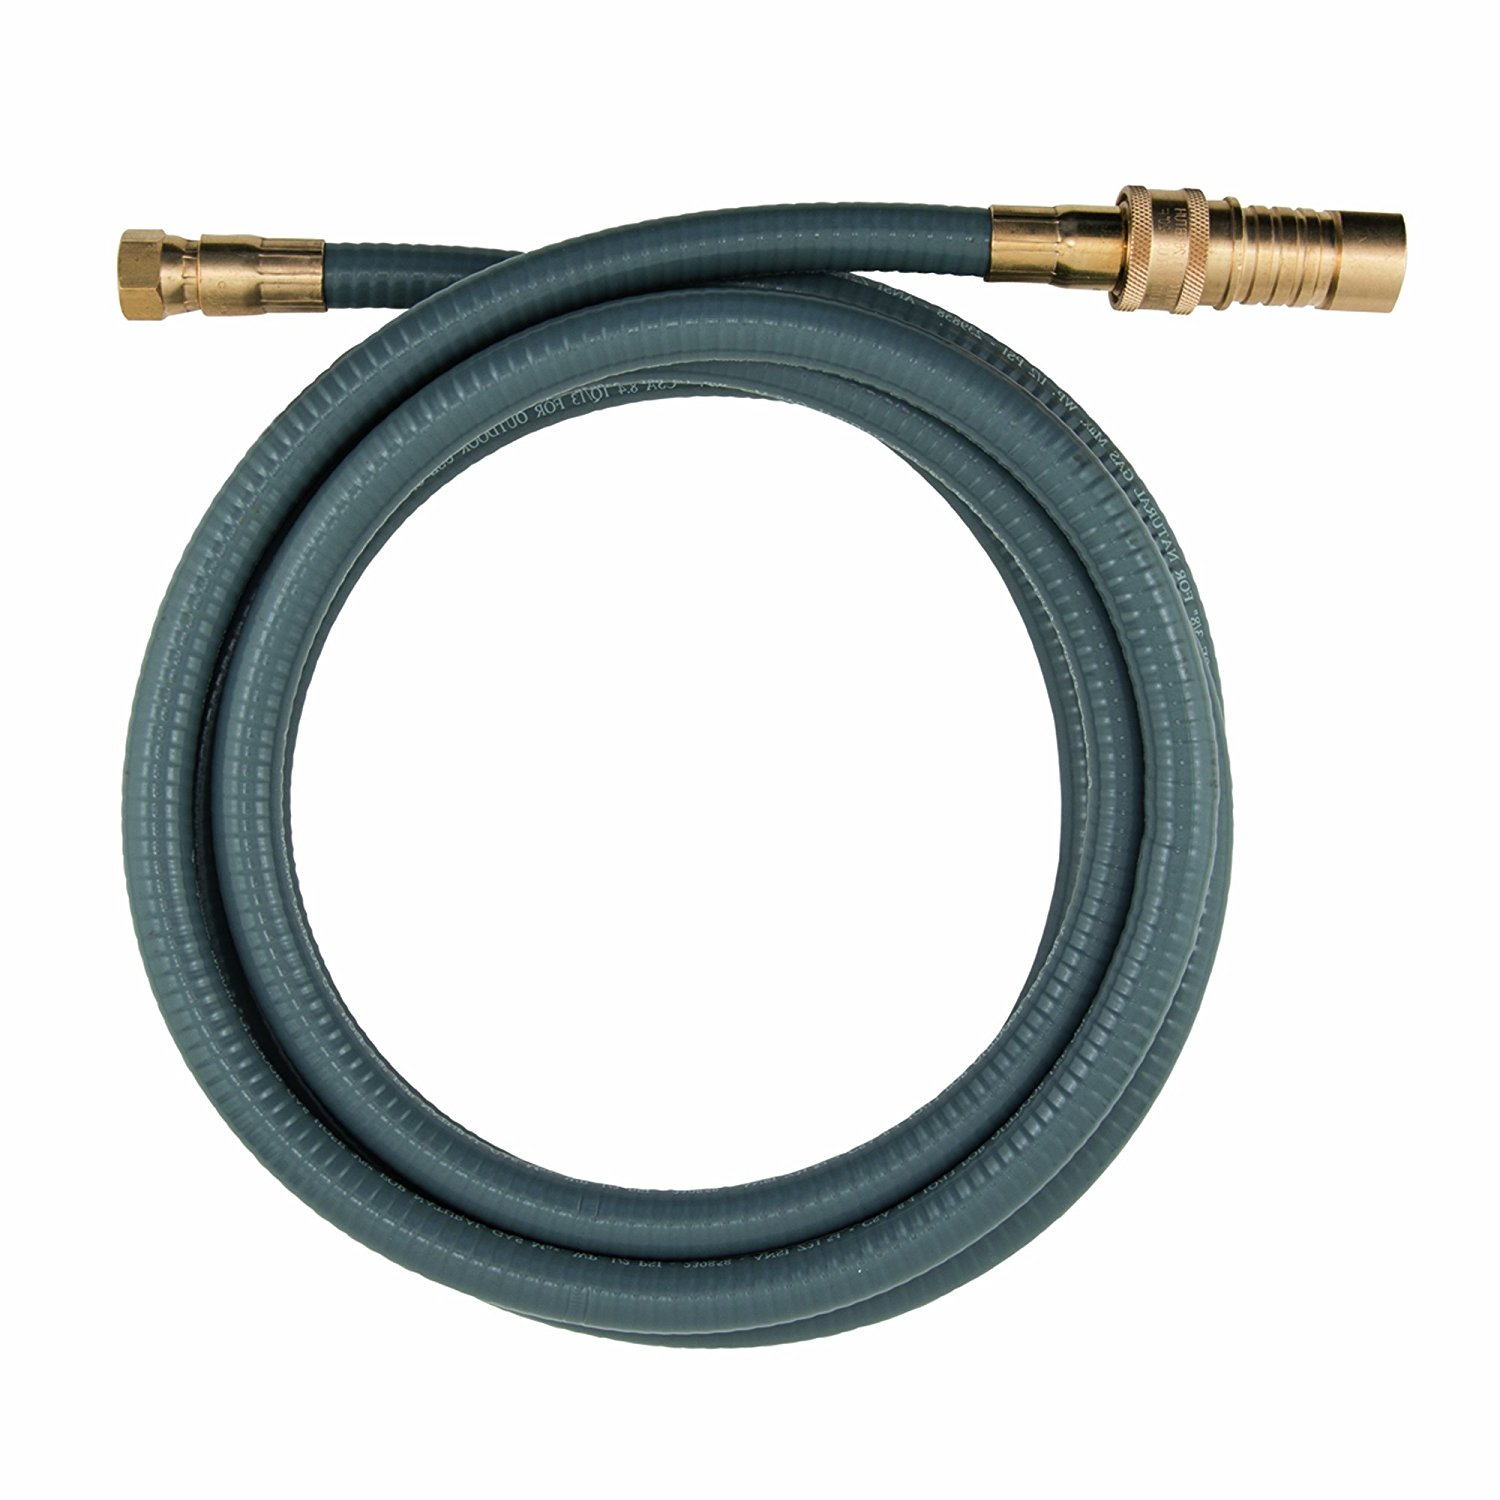 Watts 30D-10QD 1/2-Inch by 10-Feet Portable Outdoor Gas Connector